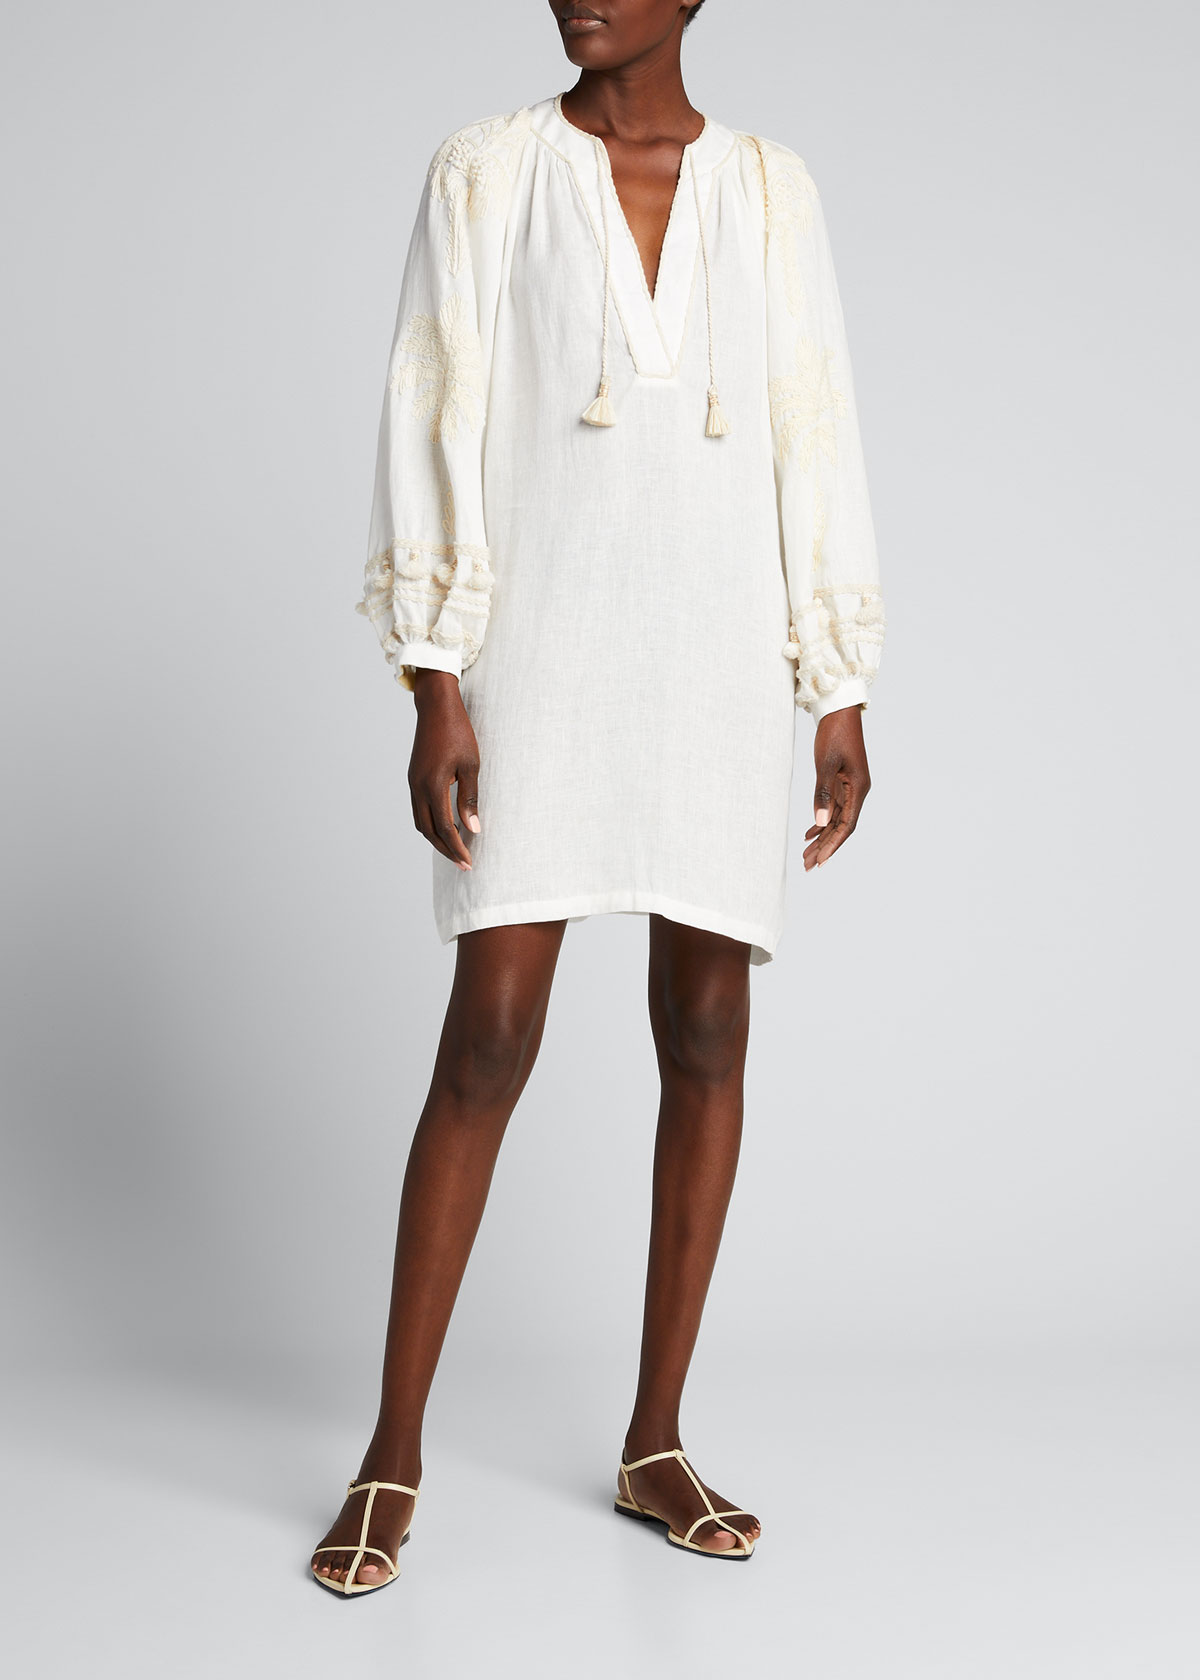 Johanna Ortiz TAPESTRY OF DREAMS EMBROIDERED-SLEEVE DRESS